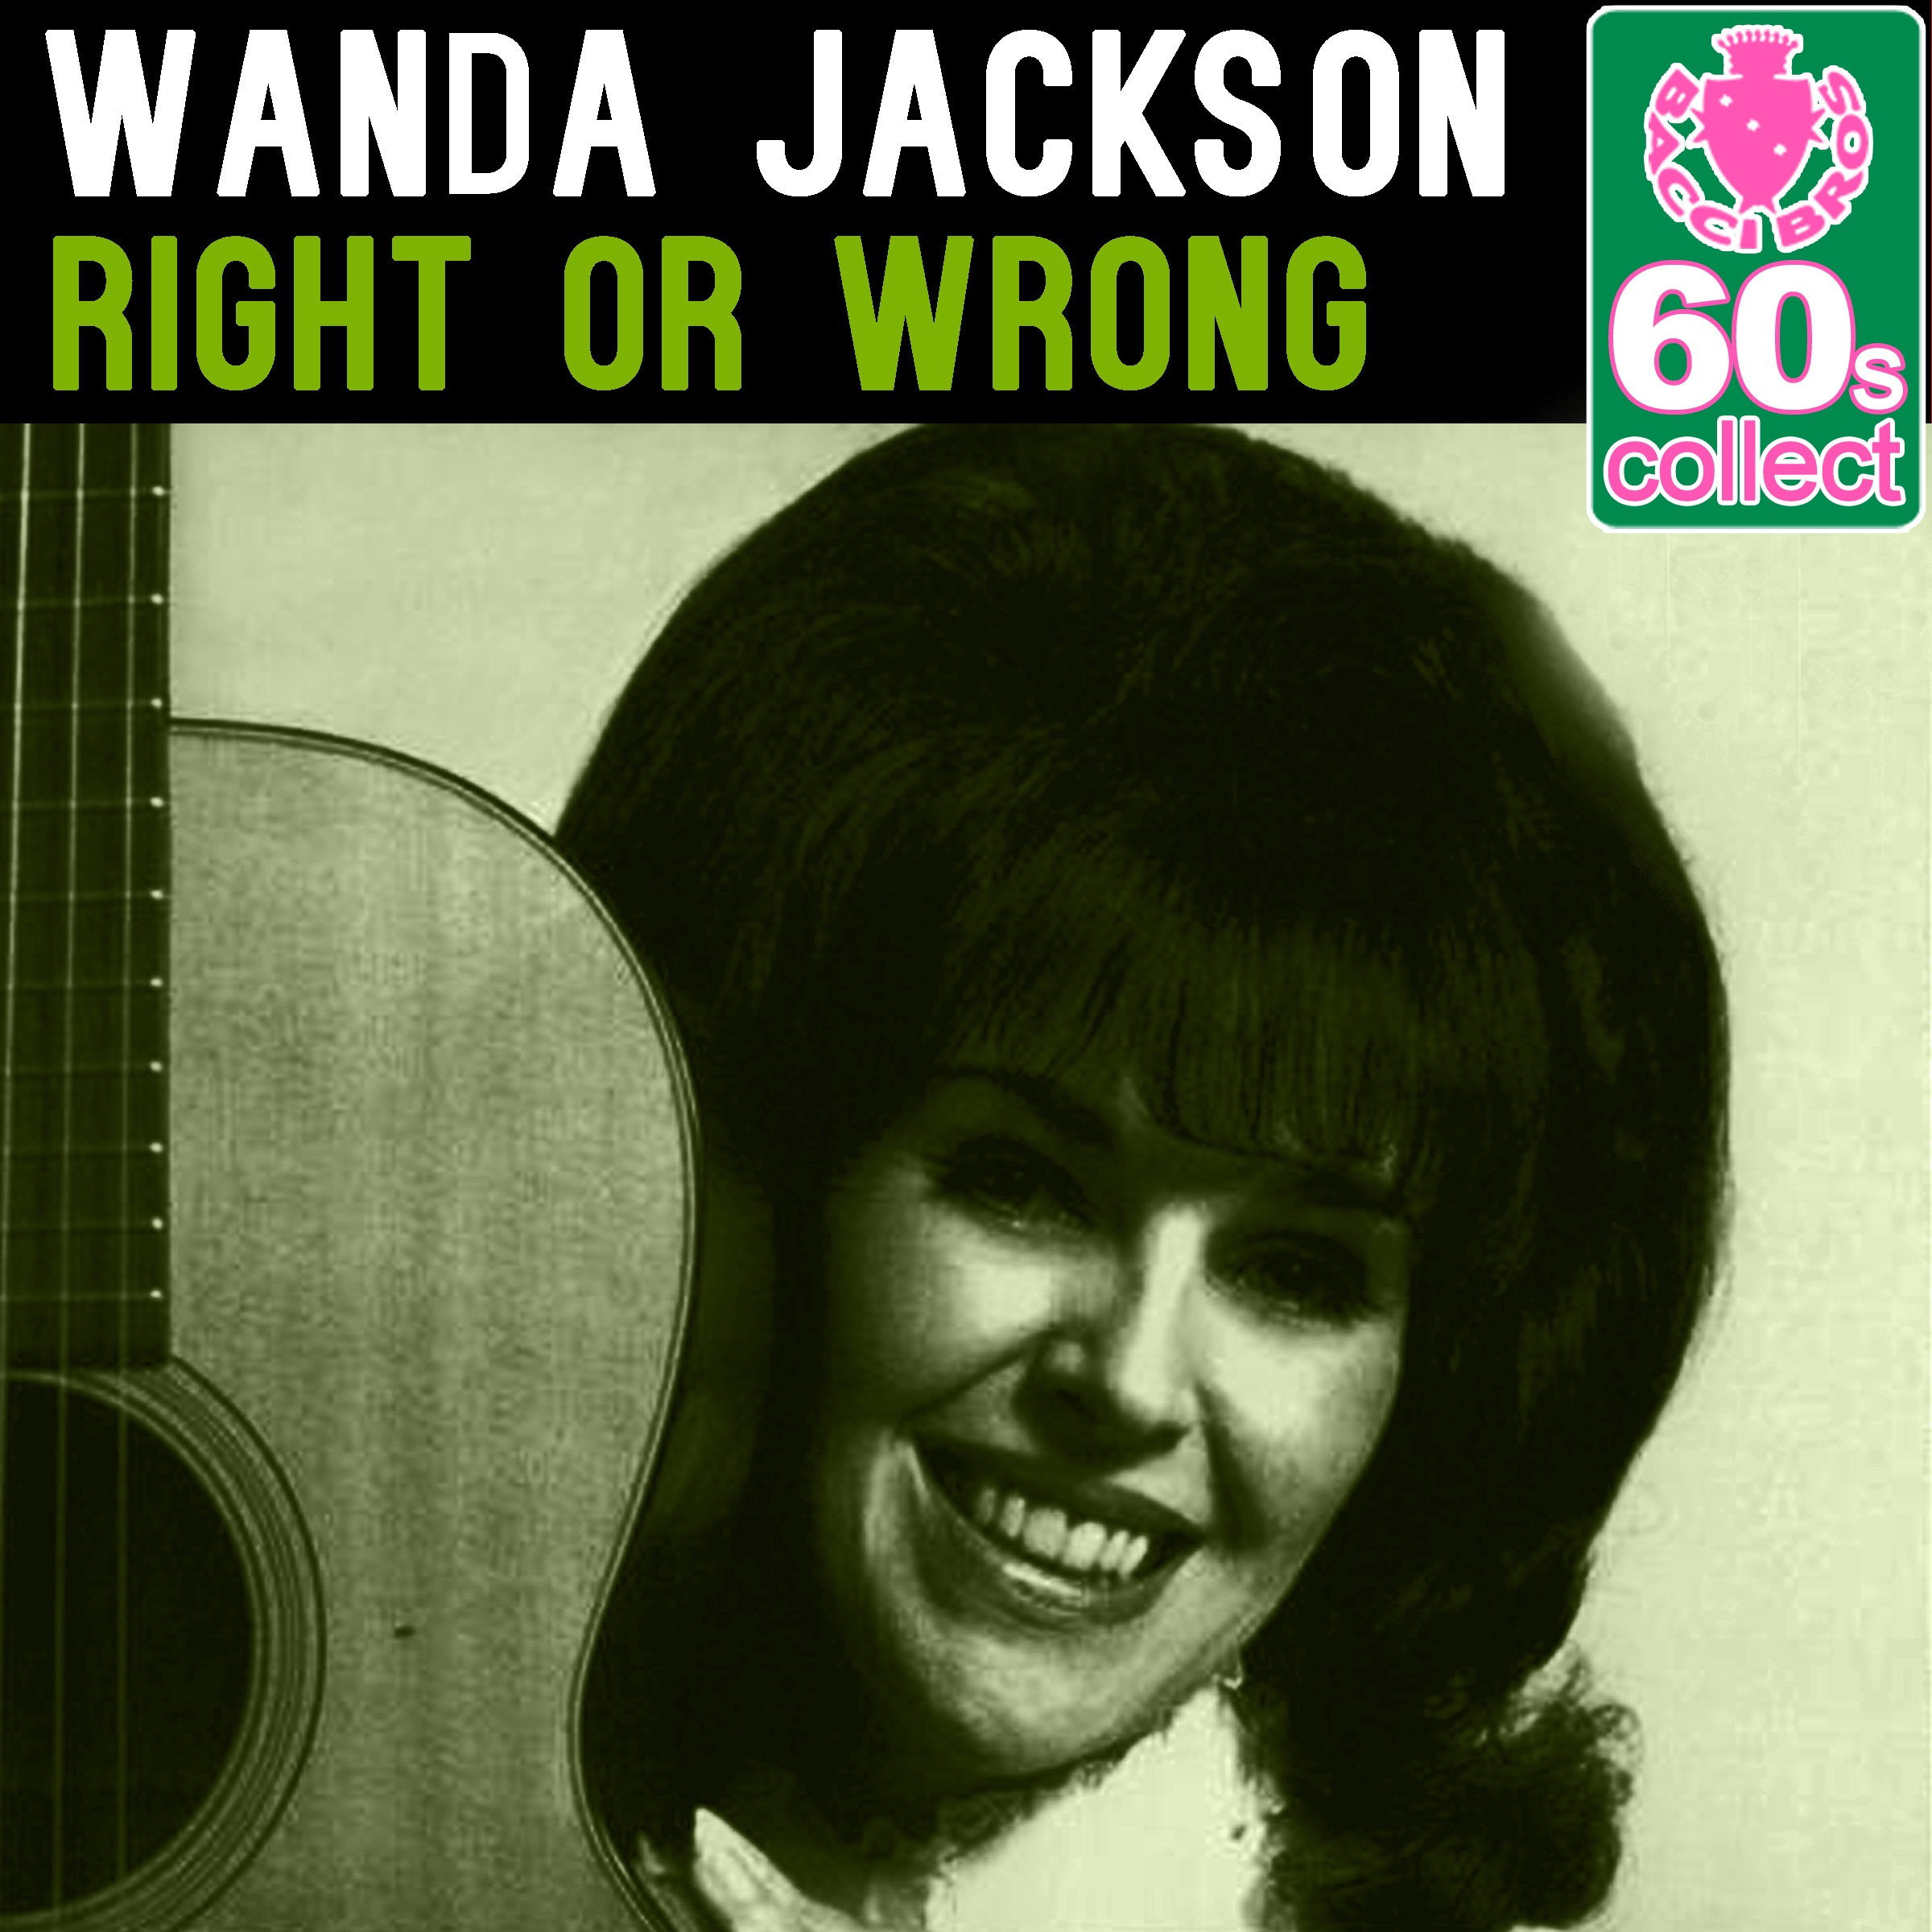 Right or Wrong (Remastered) - Single